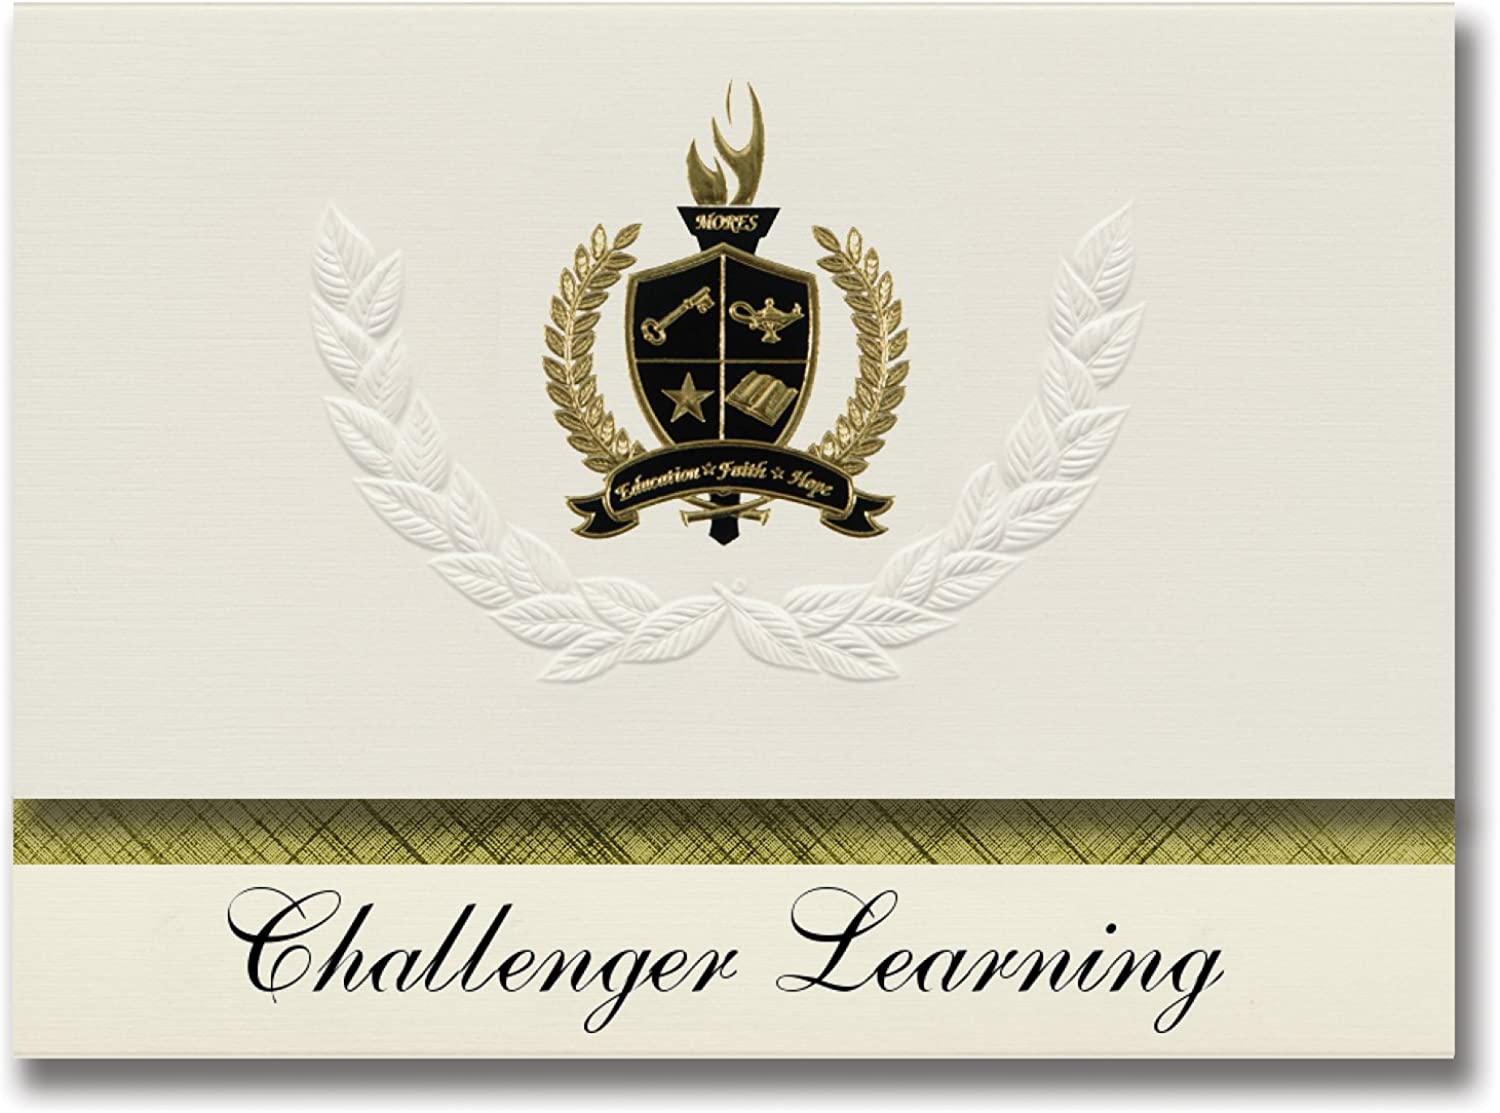 Signature Announcements Challenger Learning (Kissimmee, FL) Graduationsankündigungen, Präsidential-Stil, Grundpaket Grundpaket Grundpaket mit 25 Goldfarbenen und schwarzen metallischen Folienversiegelungen B0794SN9HH | Modernes Design